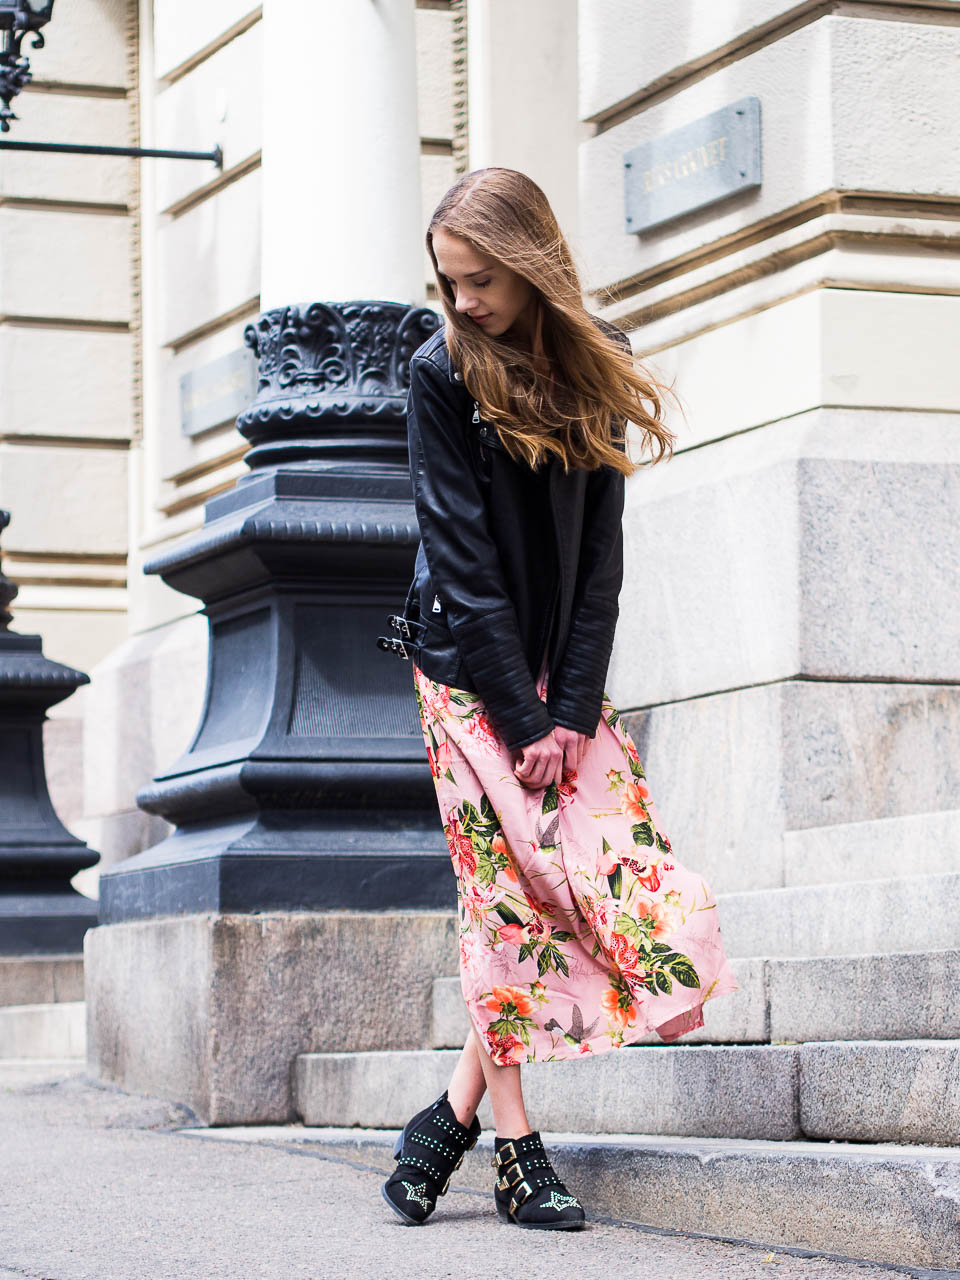 fashion-outfit-inspiration-floral-dress-and-leather-jacket